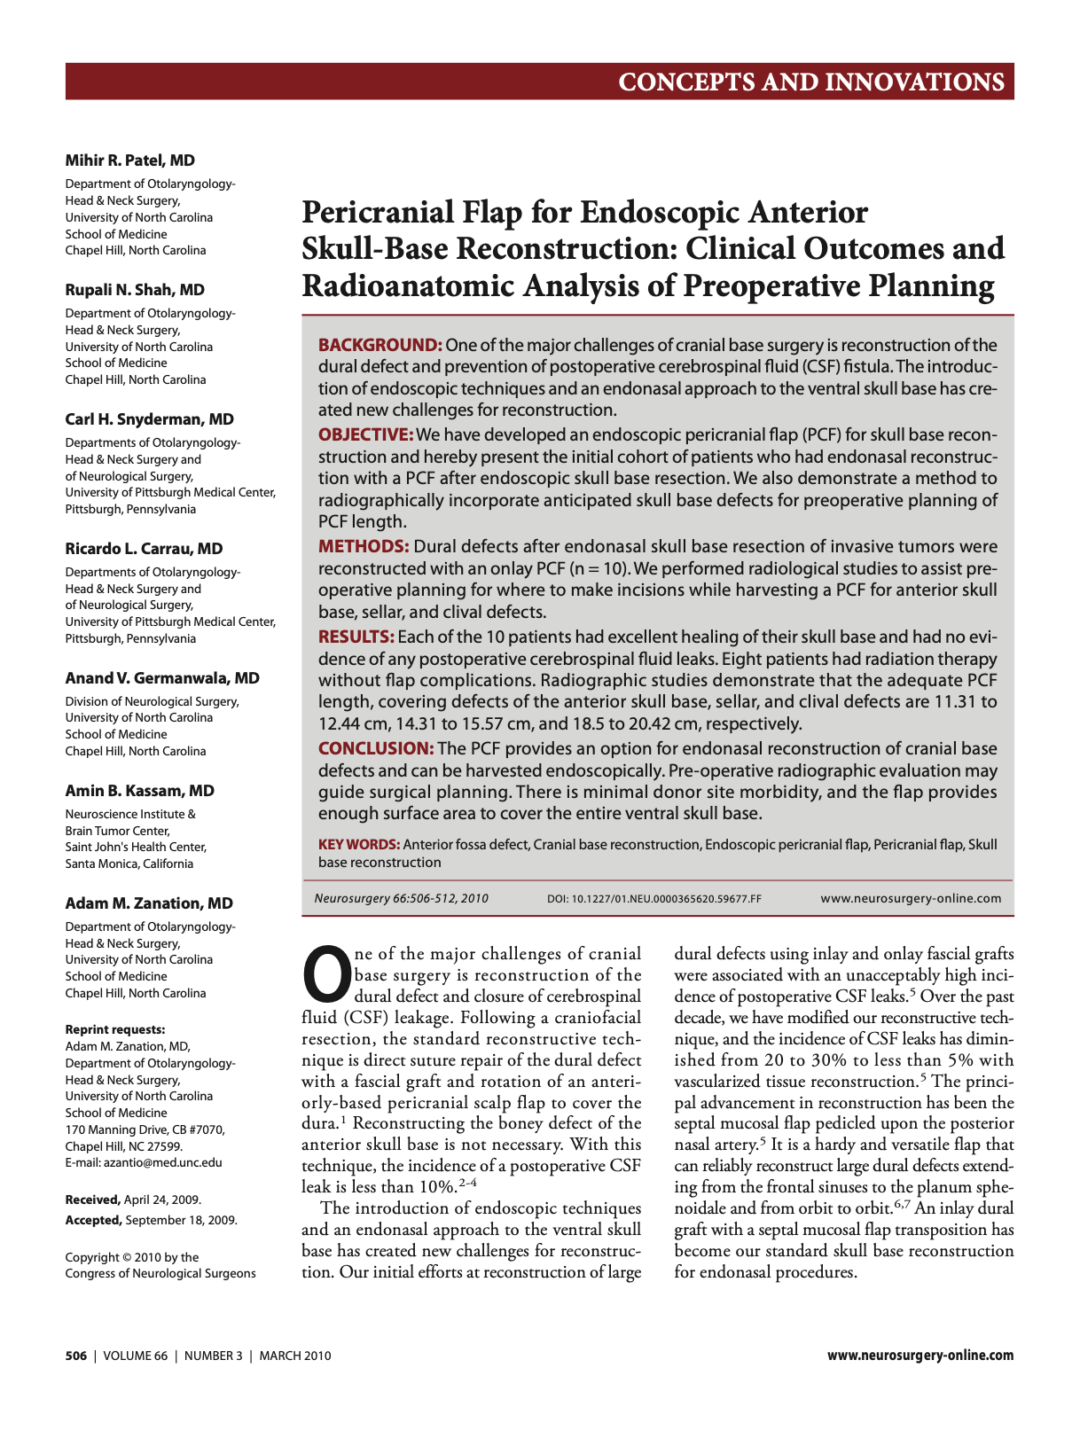 Pericranial Flap for Endoscopic Anterior Skull-Base Reconstruction: Clinical Outcomes and Radioanatomic Analysis of Preoperative Planning